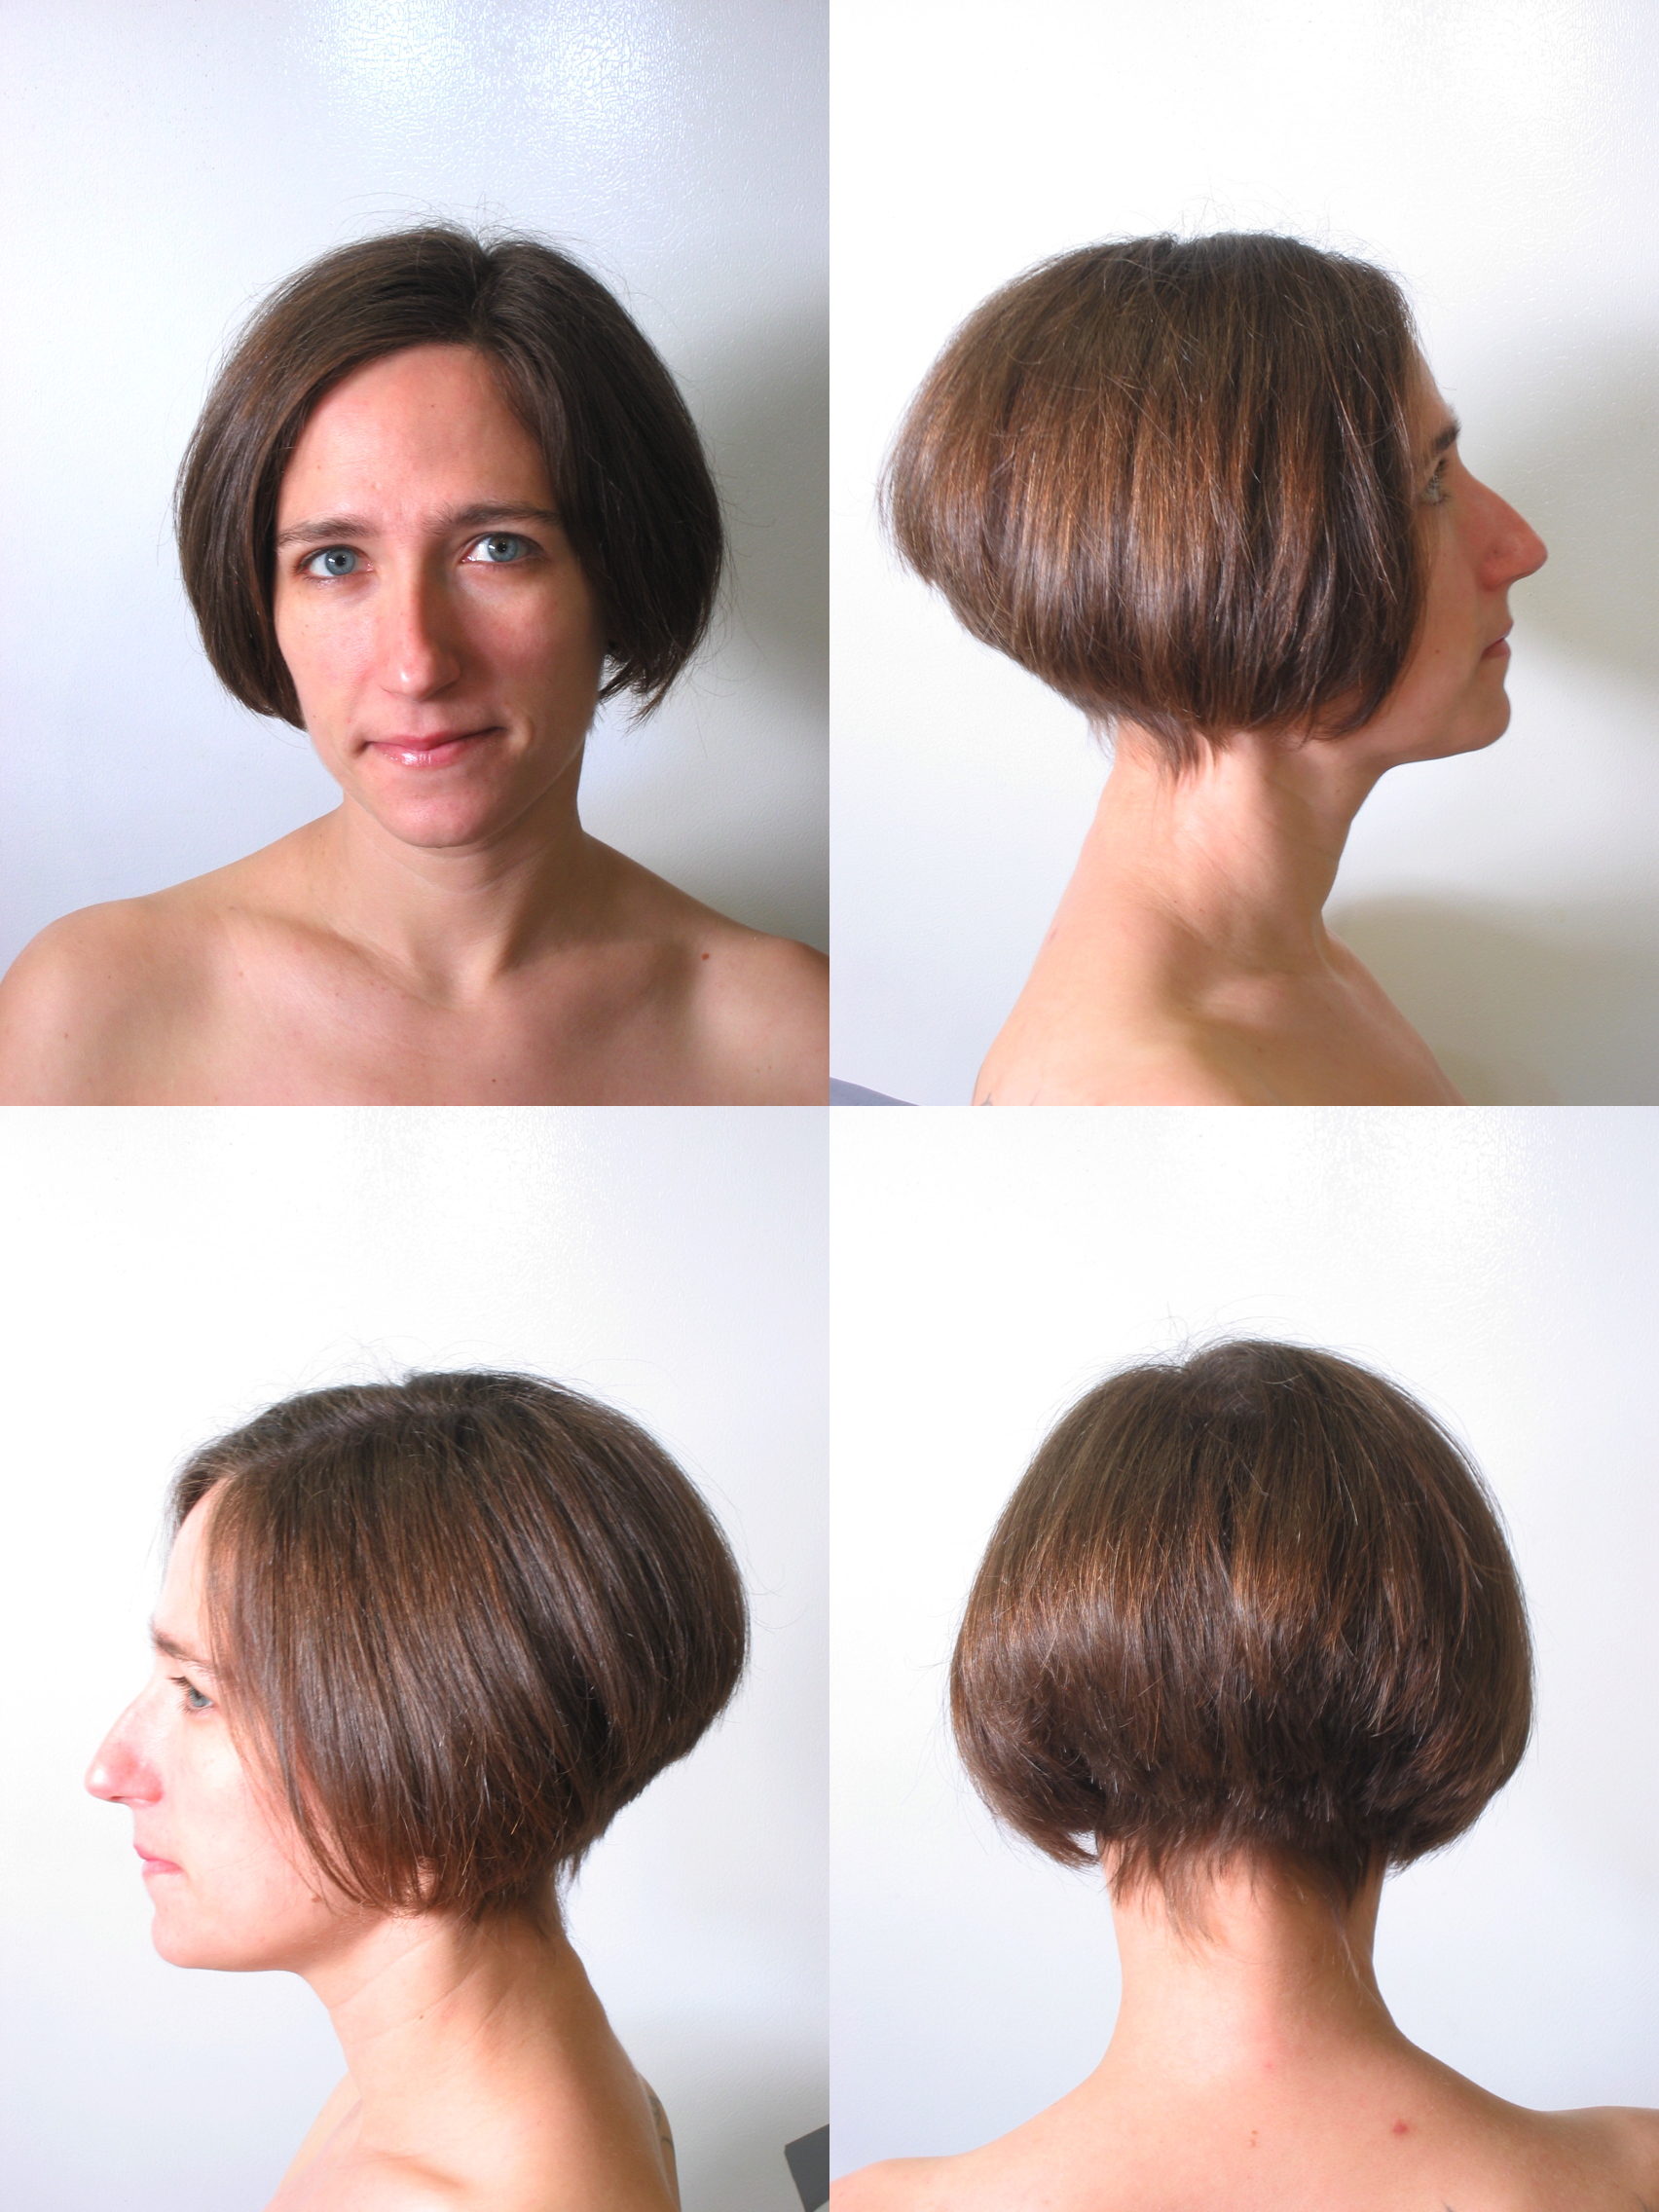 pictures of short hair styles 2009